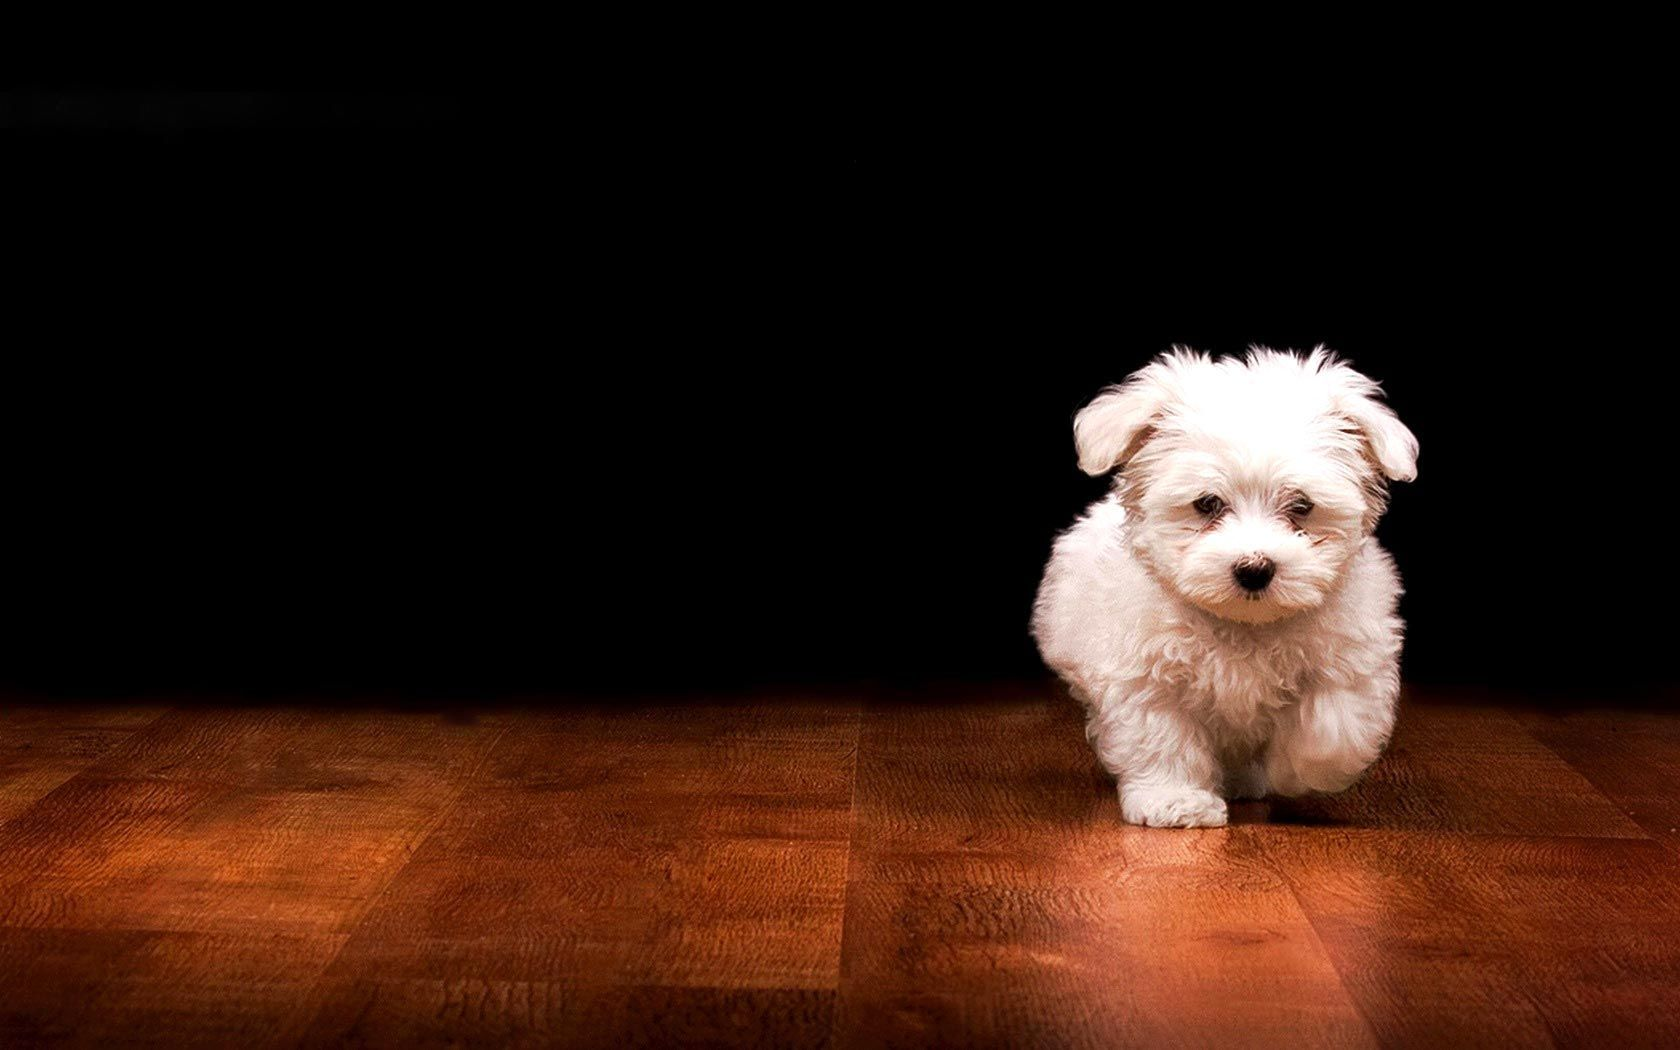 Dogs Laptop Wallpapers Top Free Dogs Laptop Backgrounds Wallpaperaccess